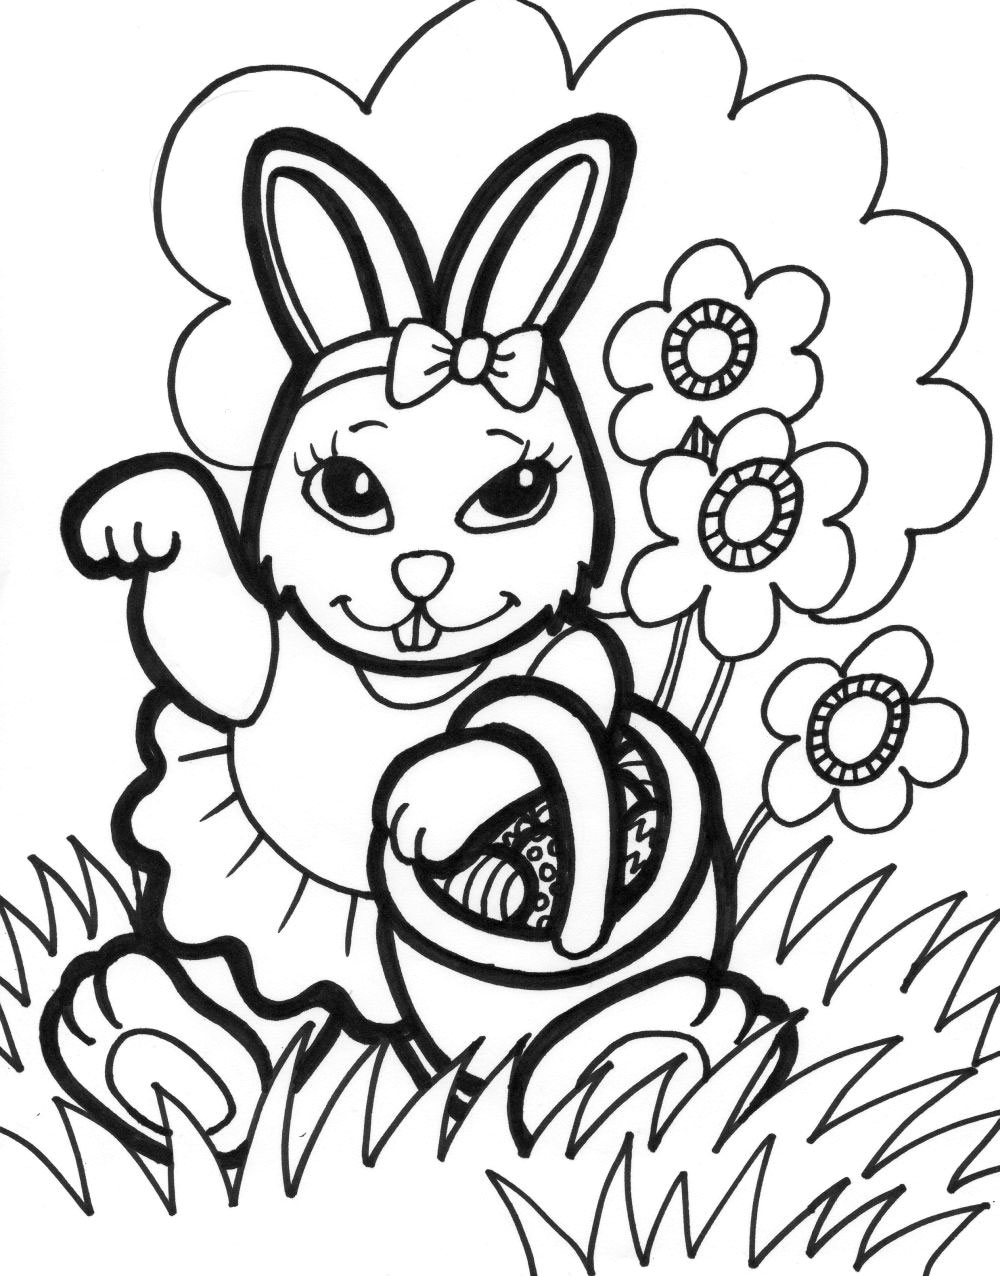 Bunny Coloring Sheets Free Printable 1110 Gallery Of Easter Basket Coloring Pages to Print Gallery